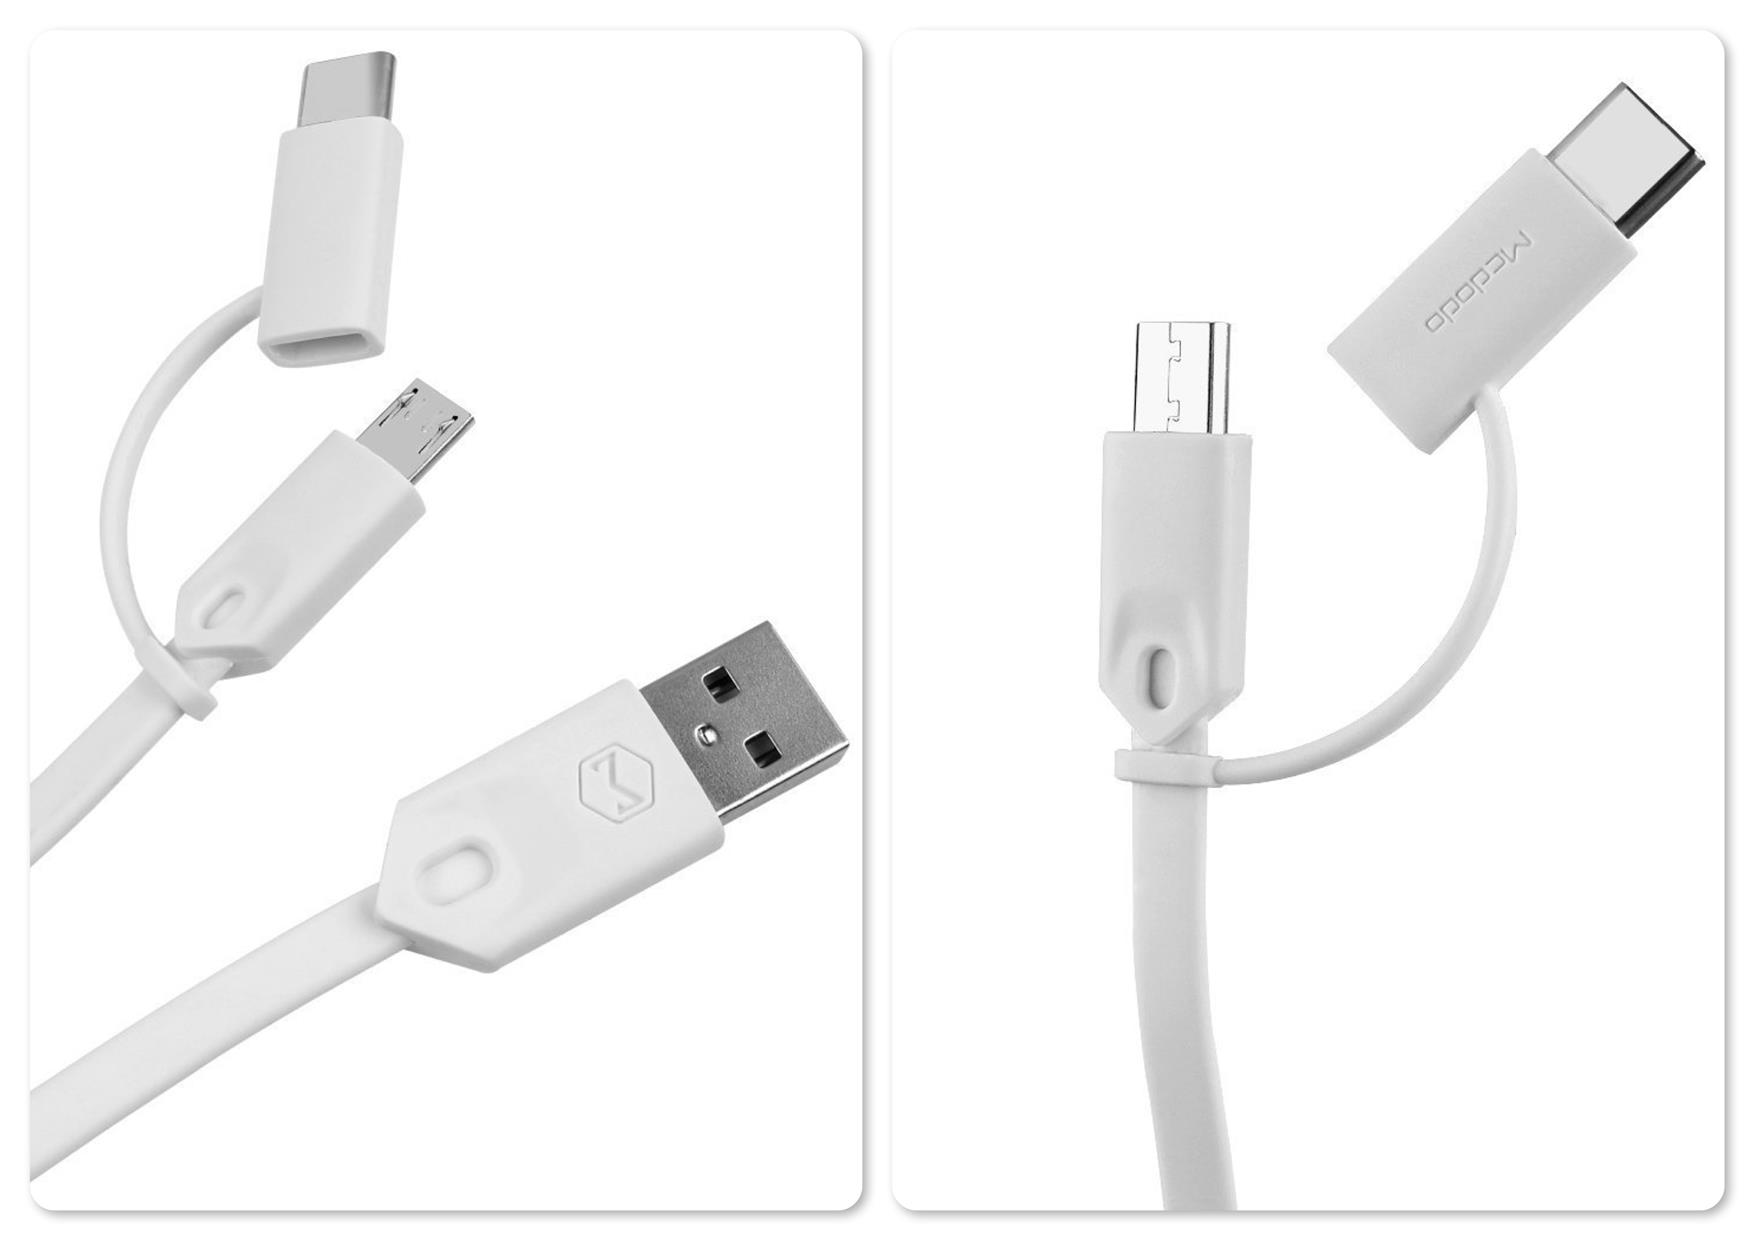 Original Mcdodo 2 in 1 MicroUSB + Type-C Adapter Data Cable